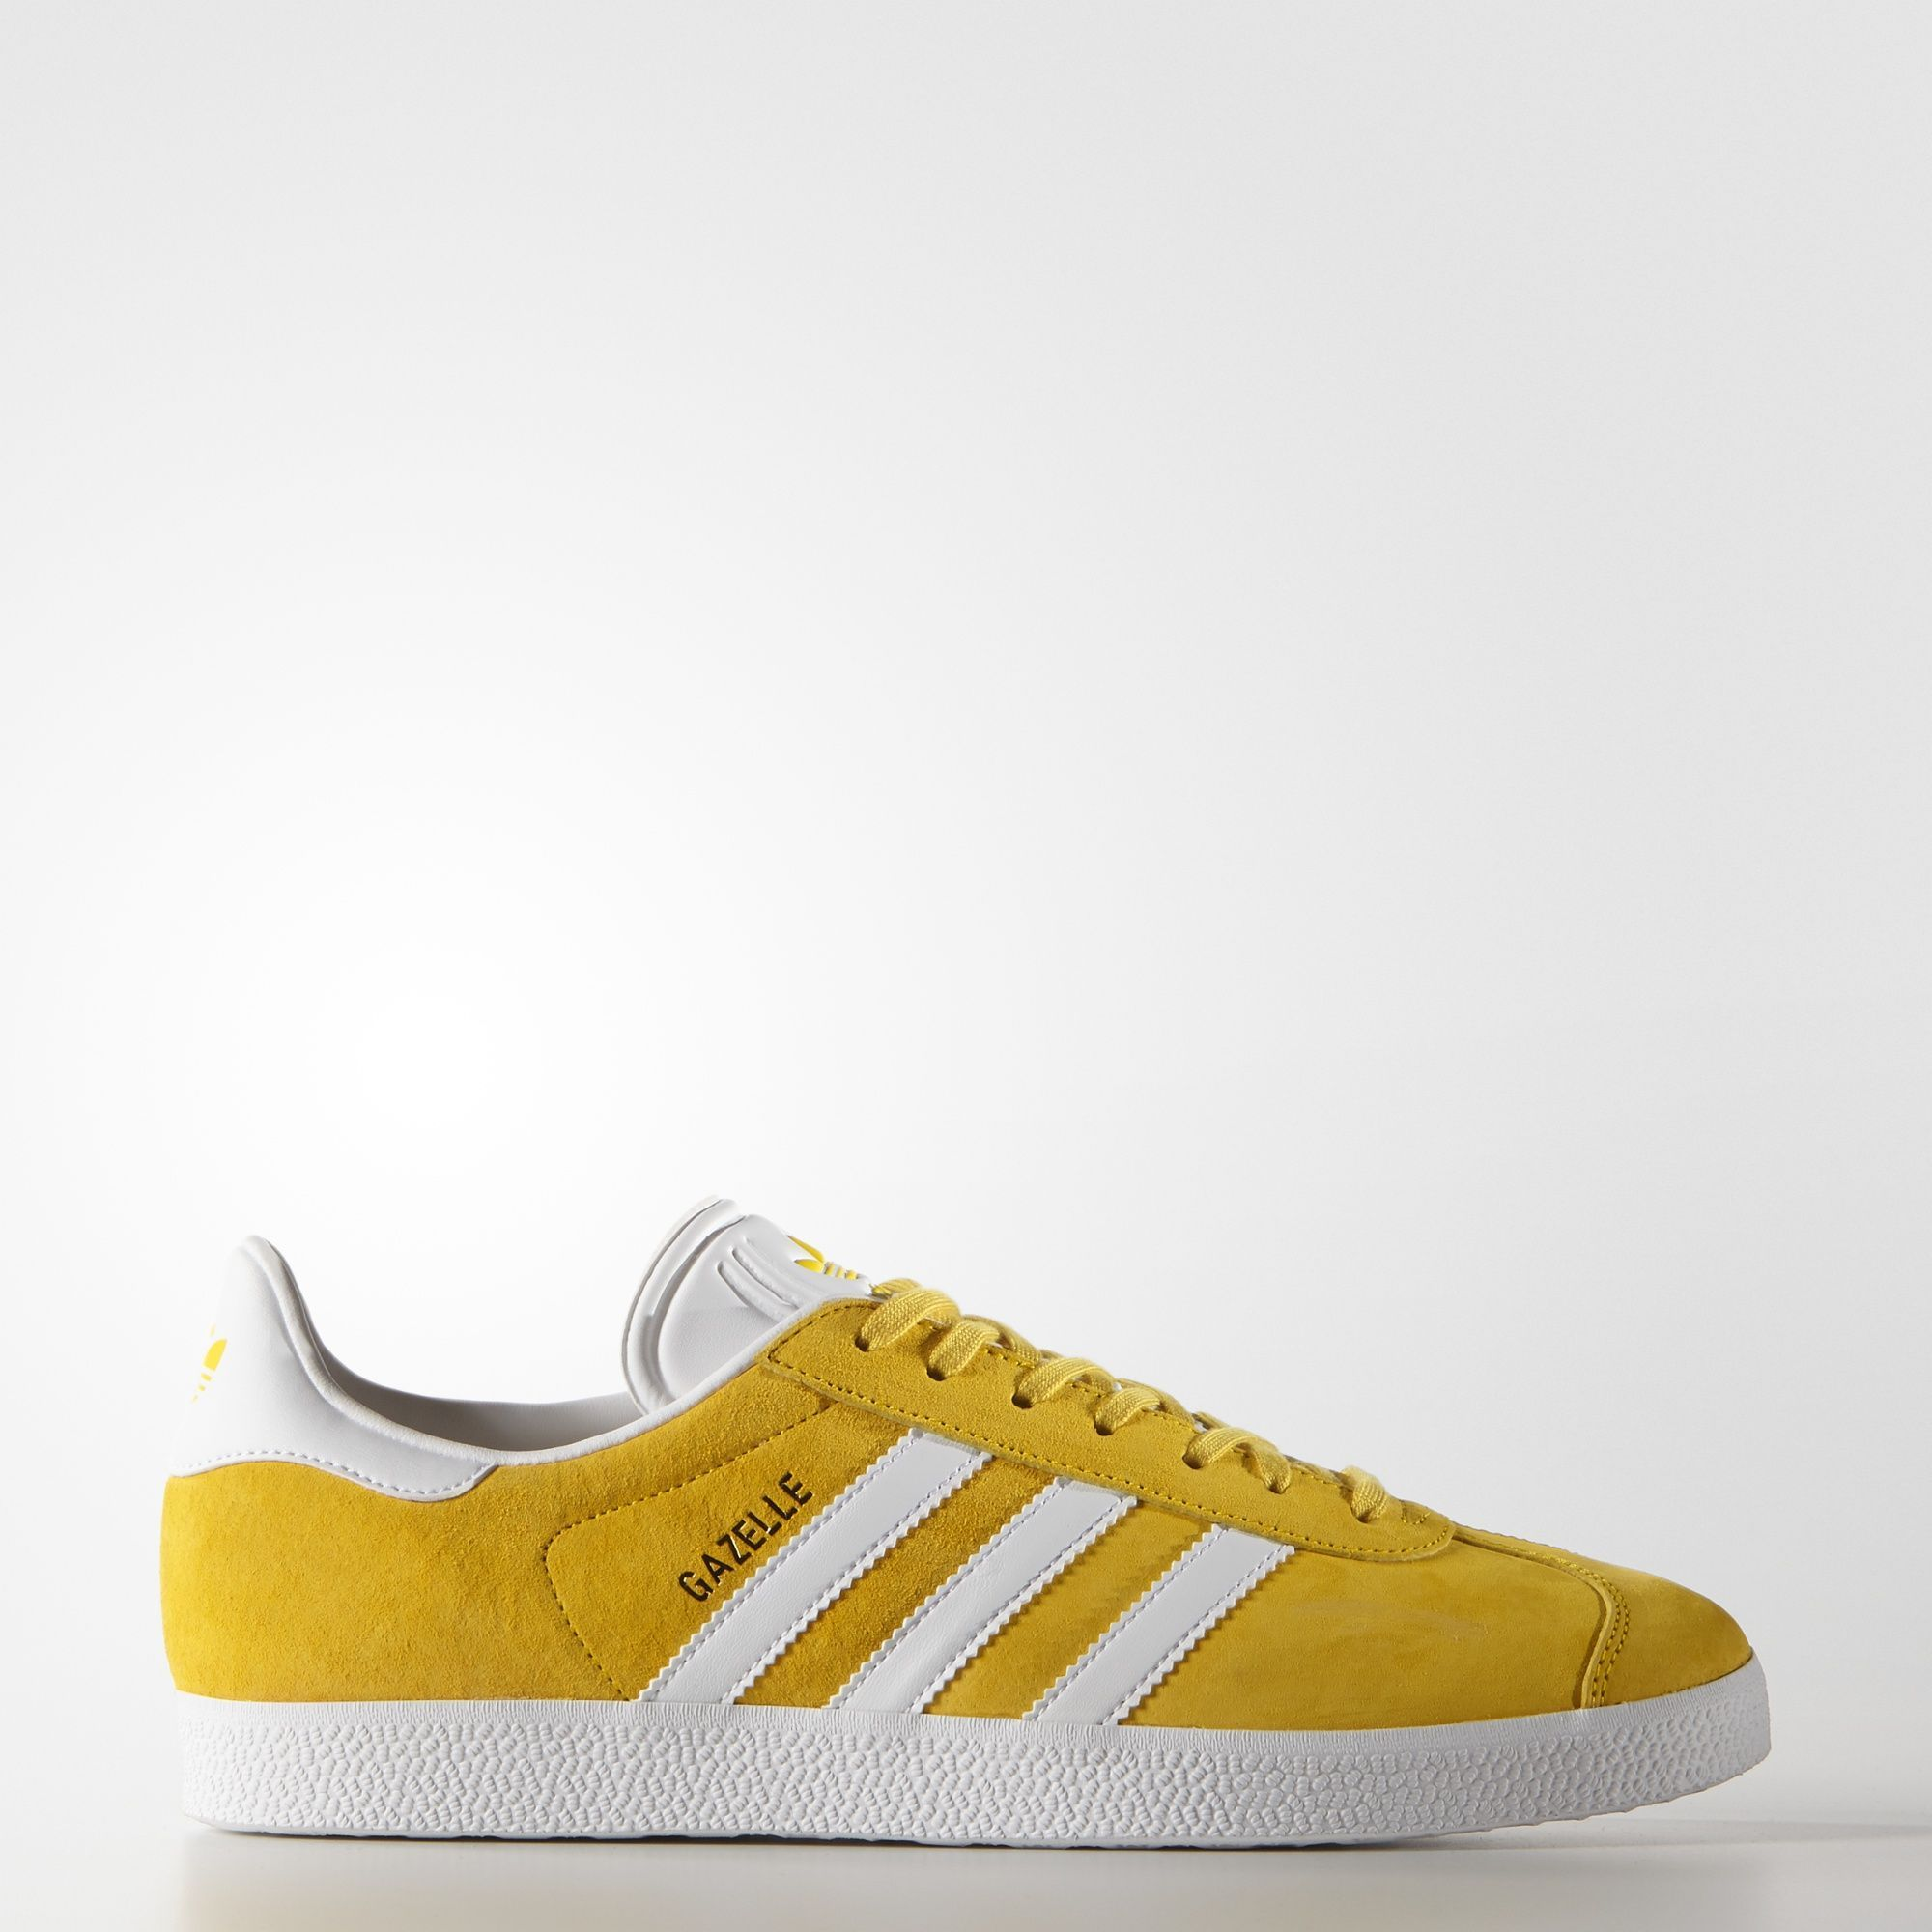 check out 78301 1bc32 adidas - Gazelle Shoes yellow (pinned color) size 8.5